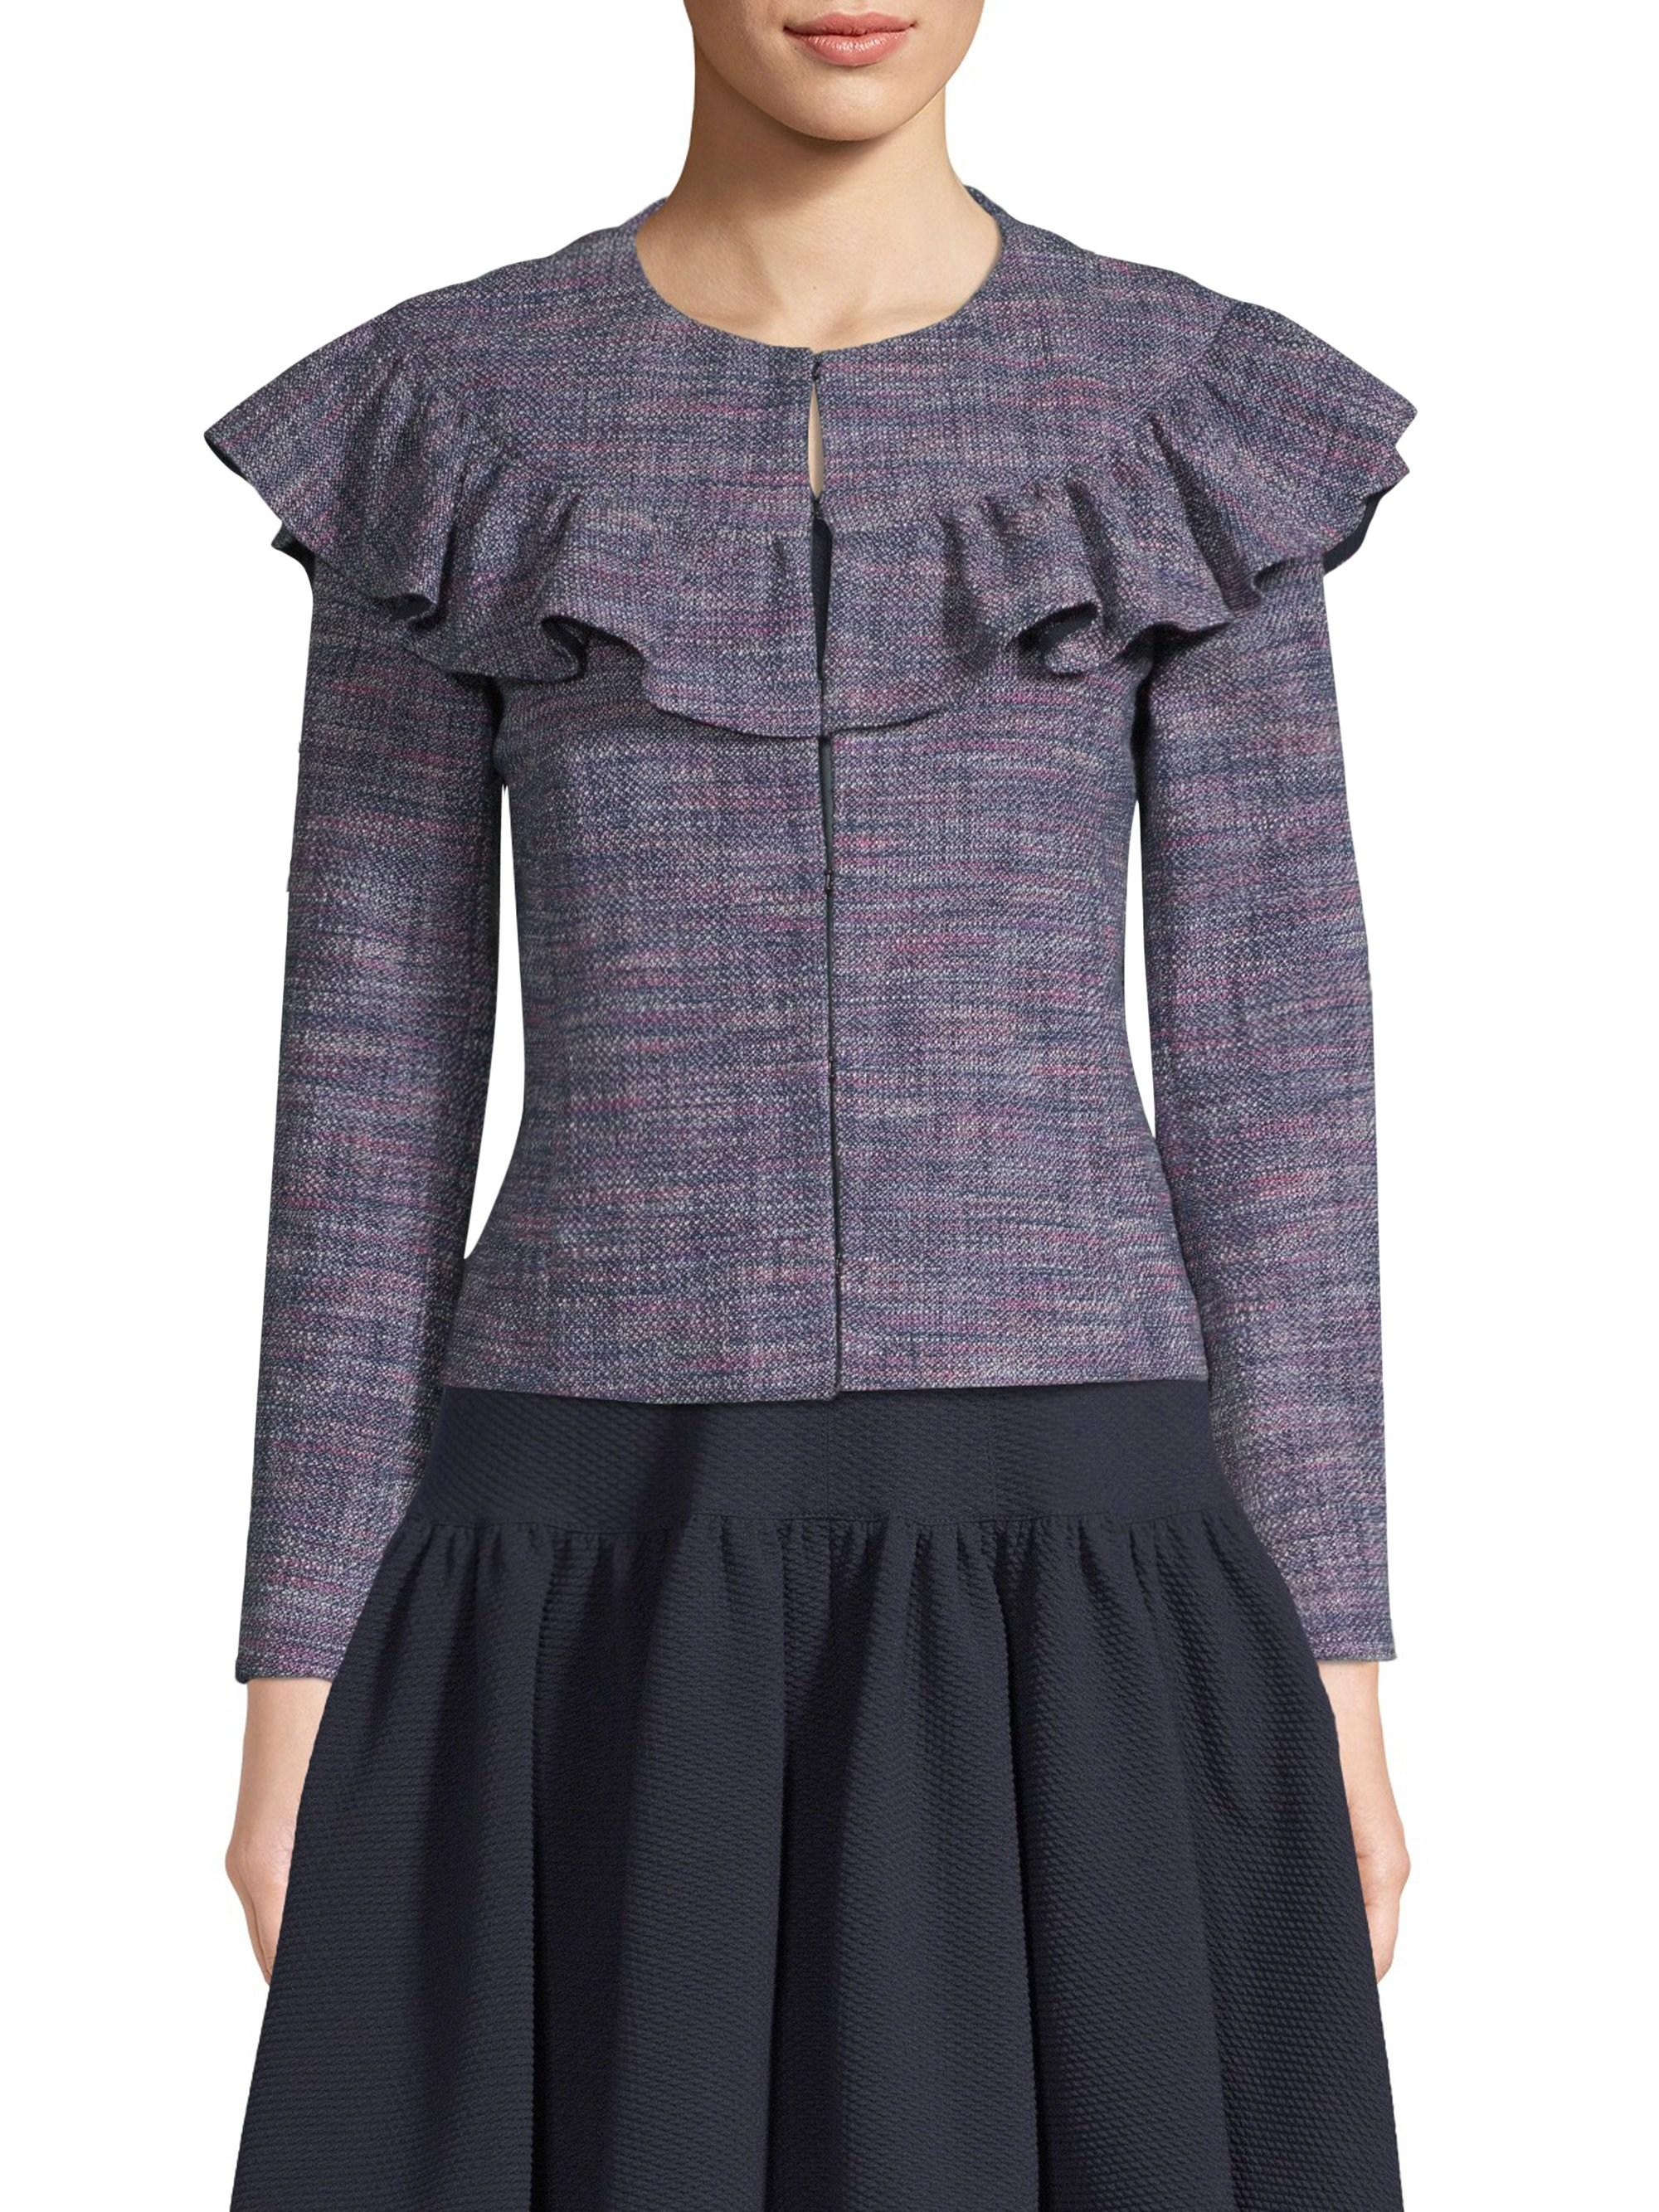 Rebecca Taylor Womens Stretch Tweed Ruffled Jacket Purple Multi Colored Size 2